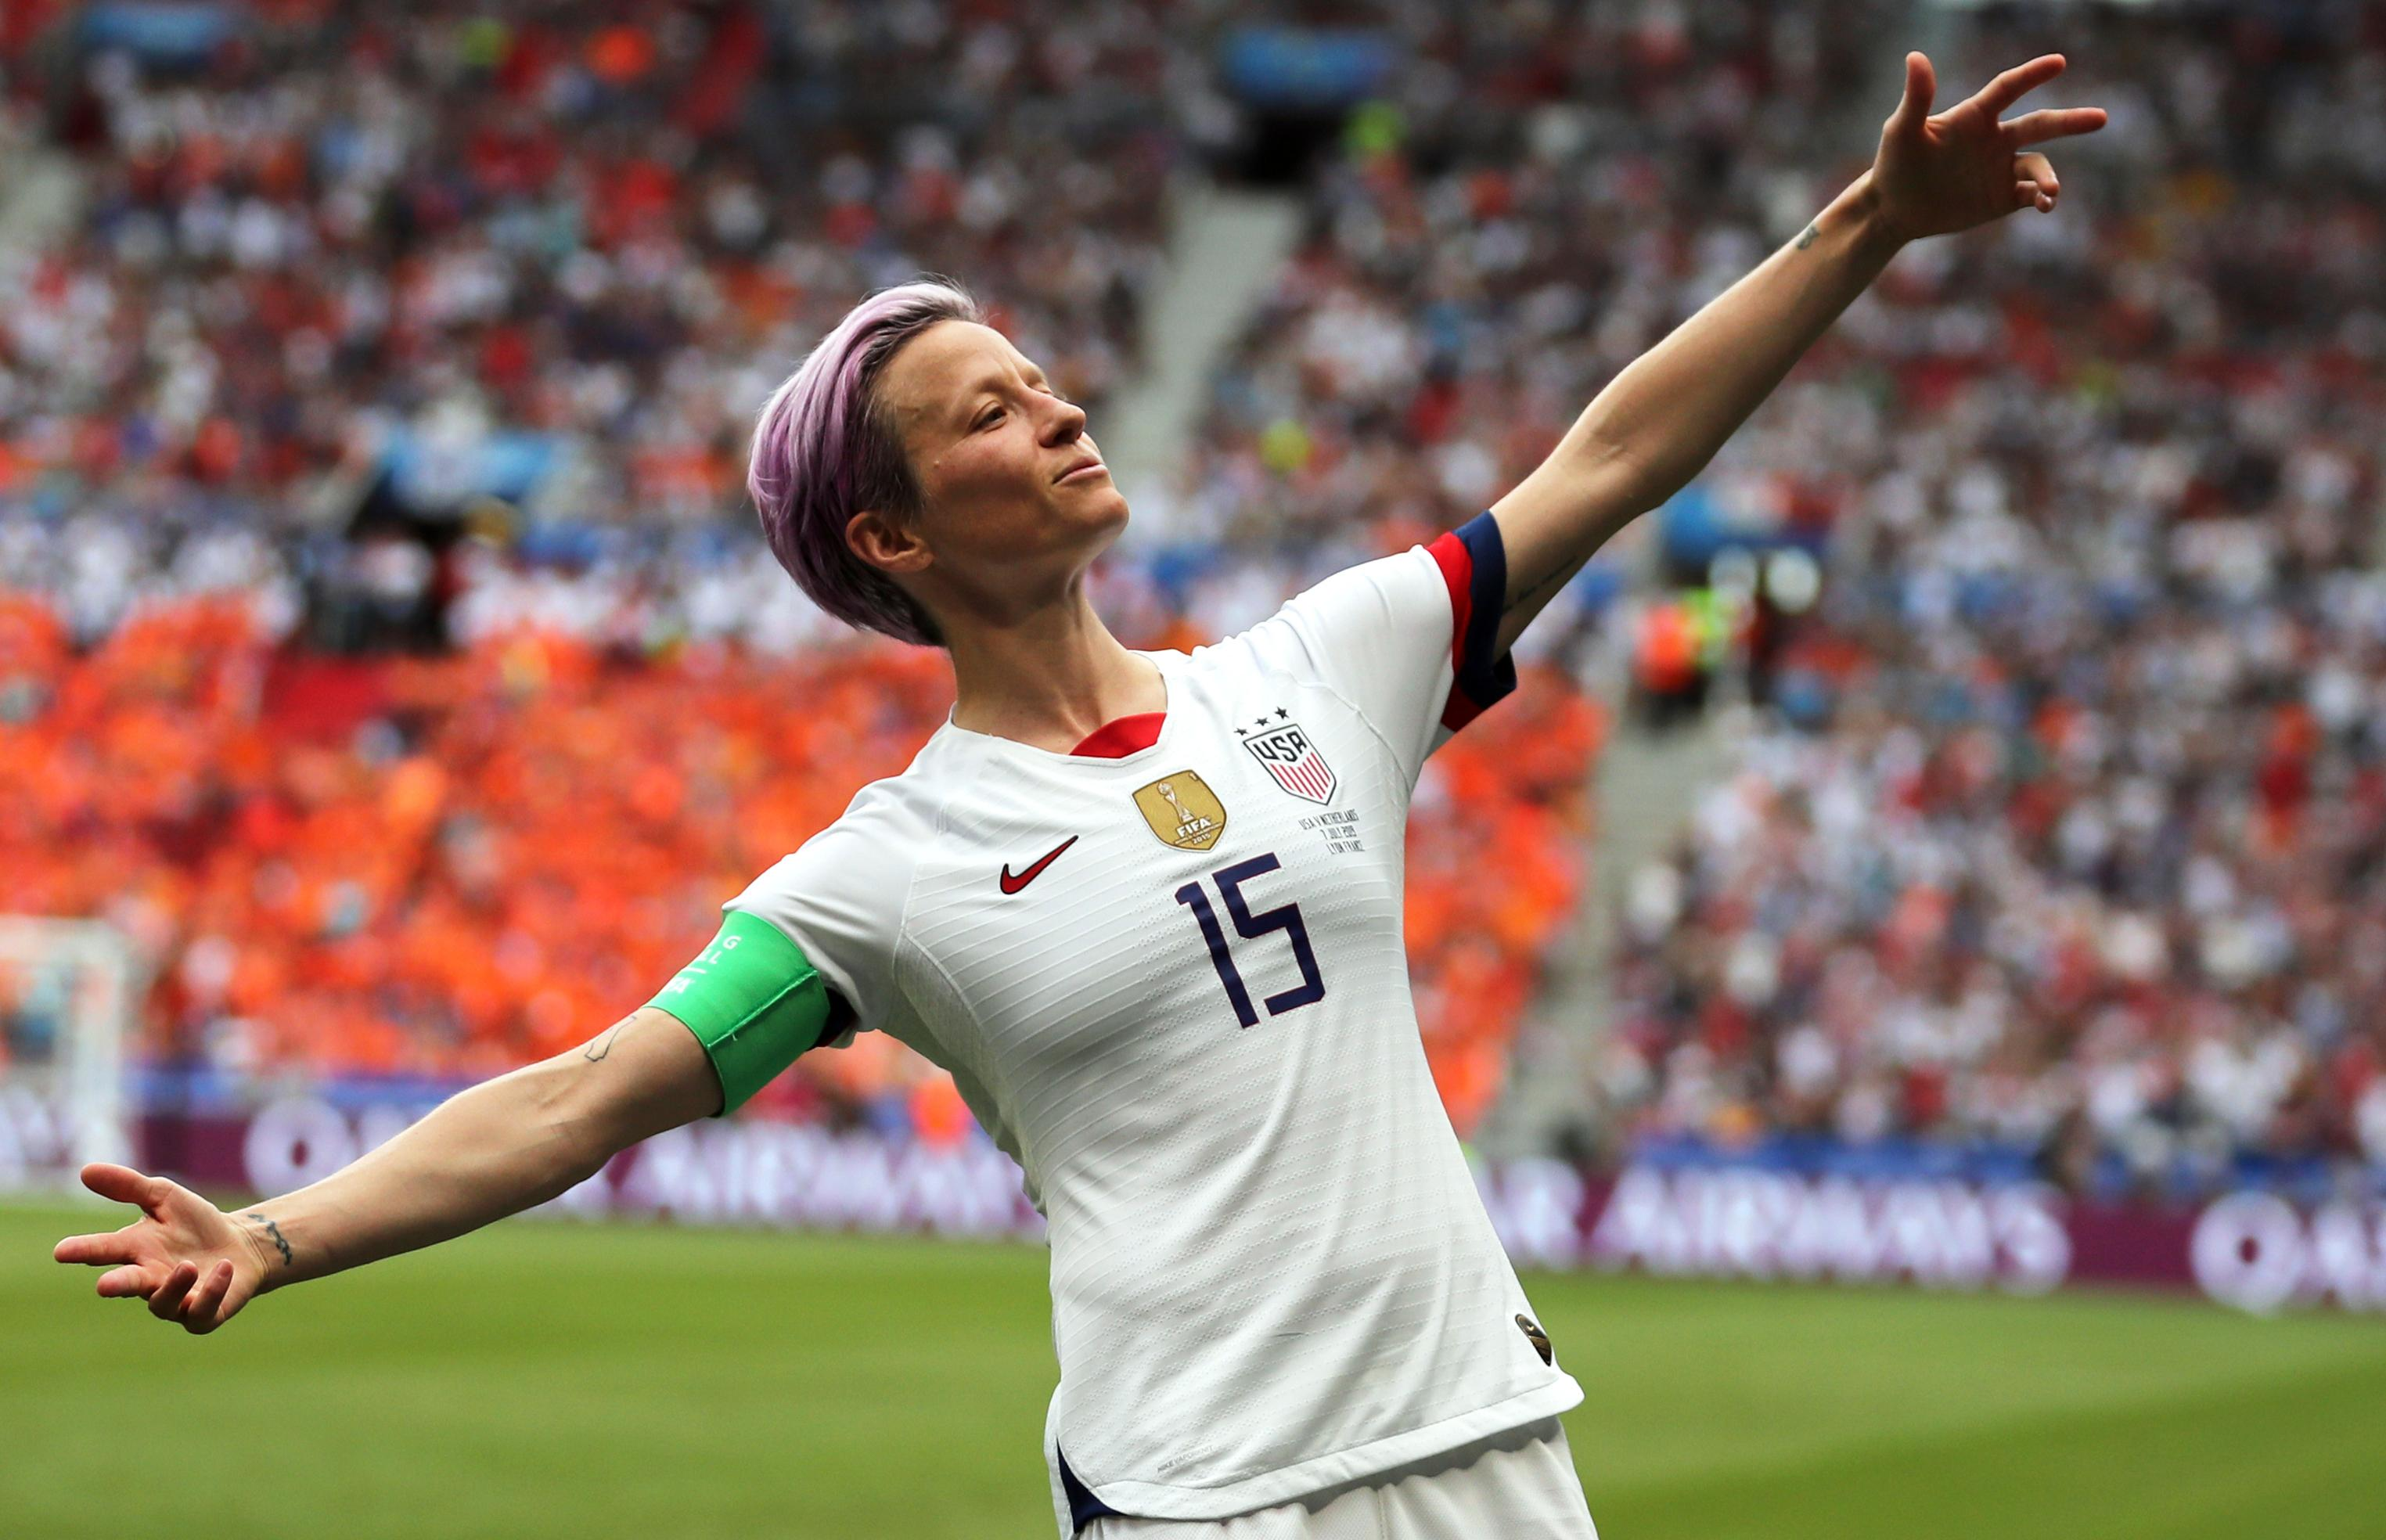 United States' Megan Rapinoe celebrates after scoring the opening goal from the penalty spot during the Women's World Cup final soccer match between US and The Netherlands at the Stade de Lyon in Decines, outside Lyon, France, Sunday, July 7, 2019. (AP Photo/Francisco Seco)